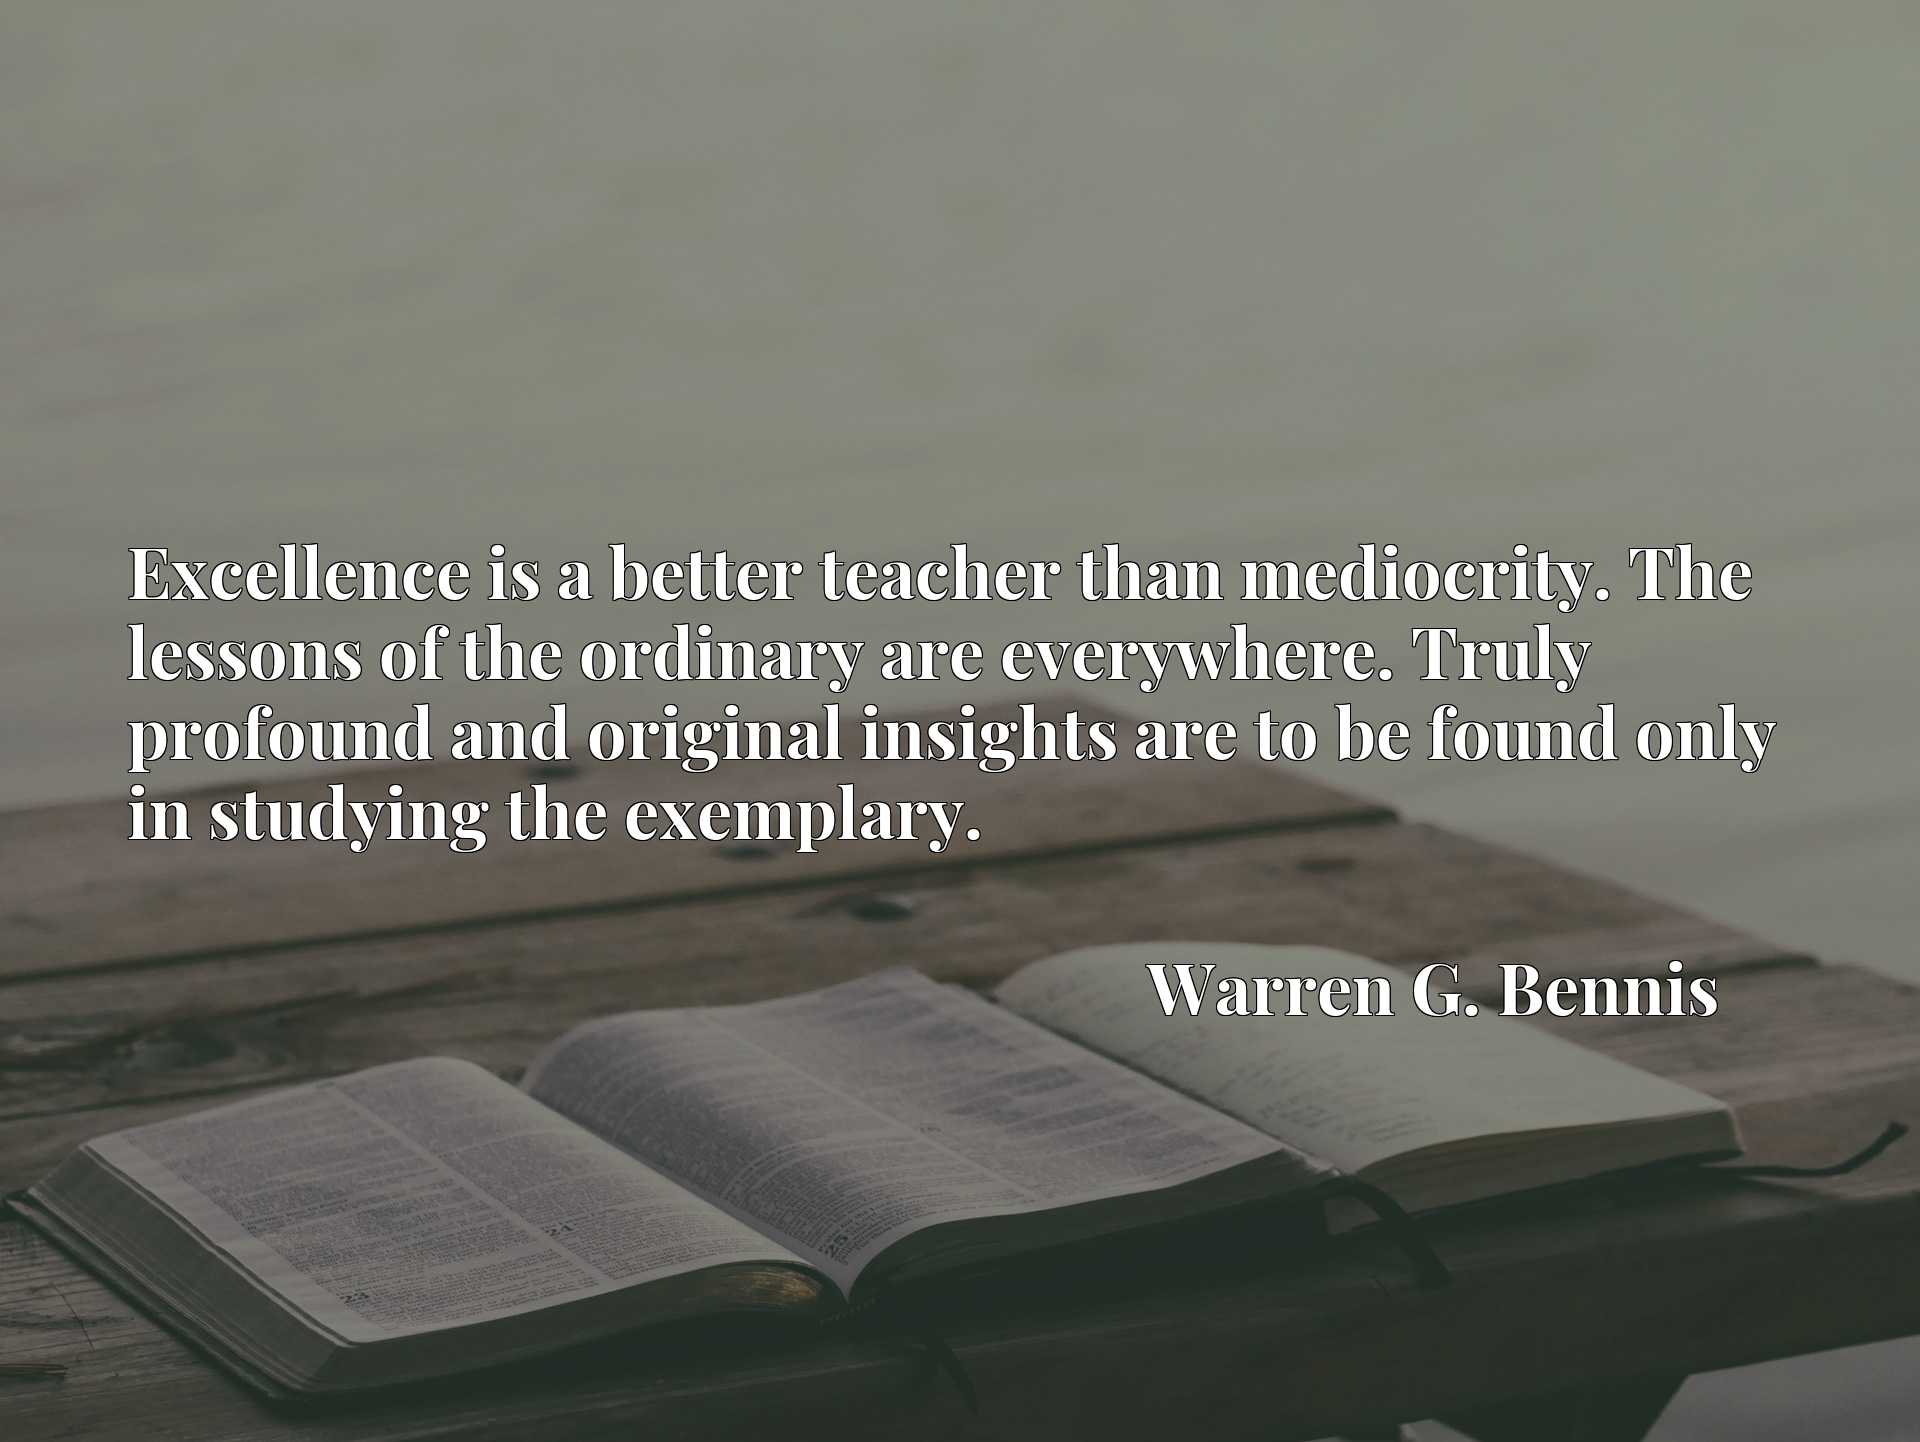 Quote Picture :Excellence is a better teacher than mediocrity. The lessons of the ordinary are everywhere. Truly profound and original insights are to be found only in studying the exemplary.